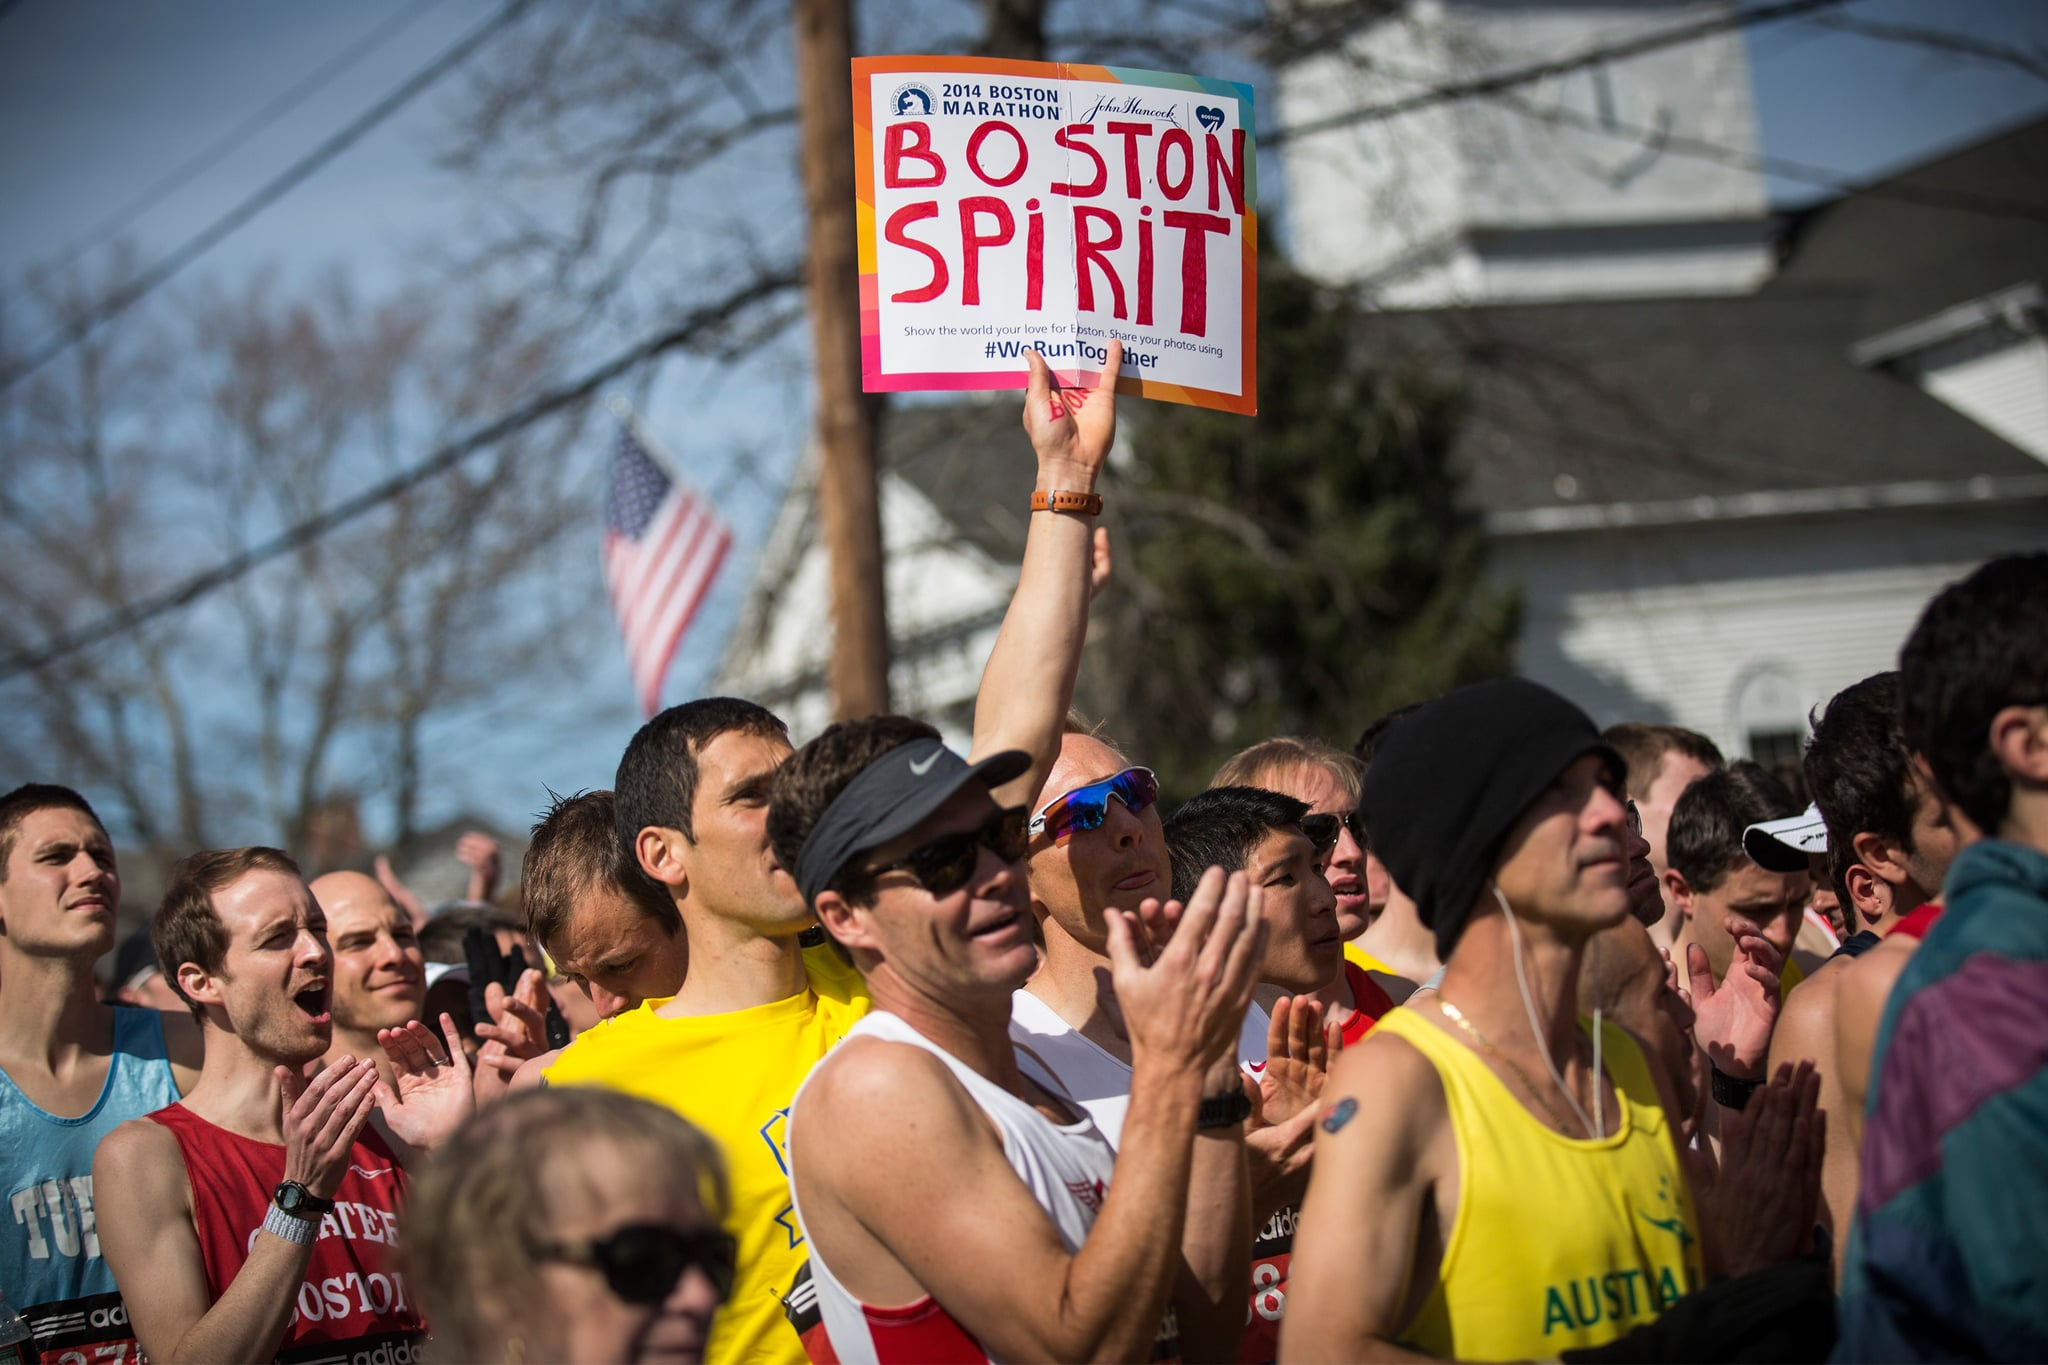 """Runners waited for the race to begin, with one participant holding up a """"Boston spirit"""" sign."""